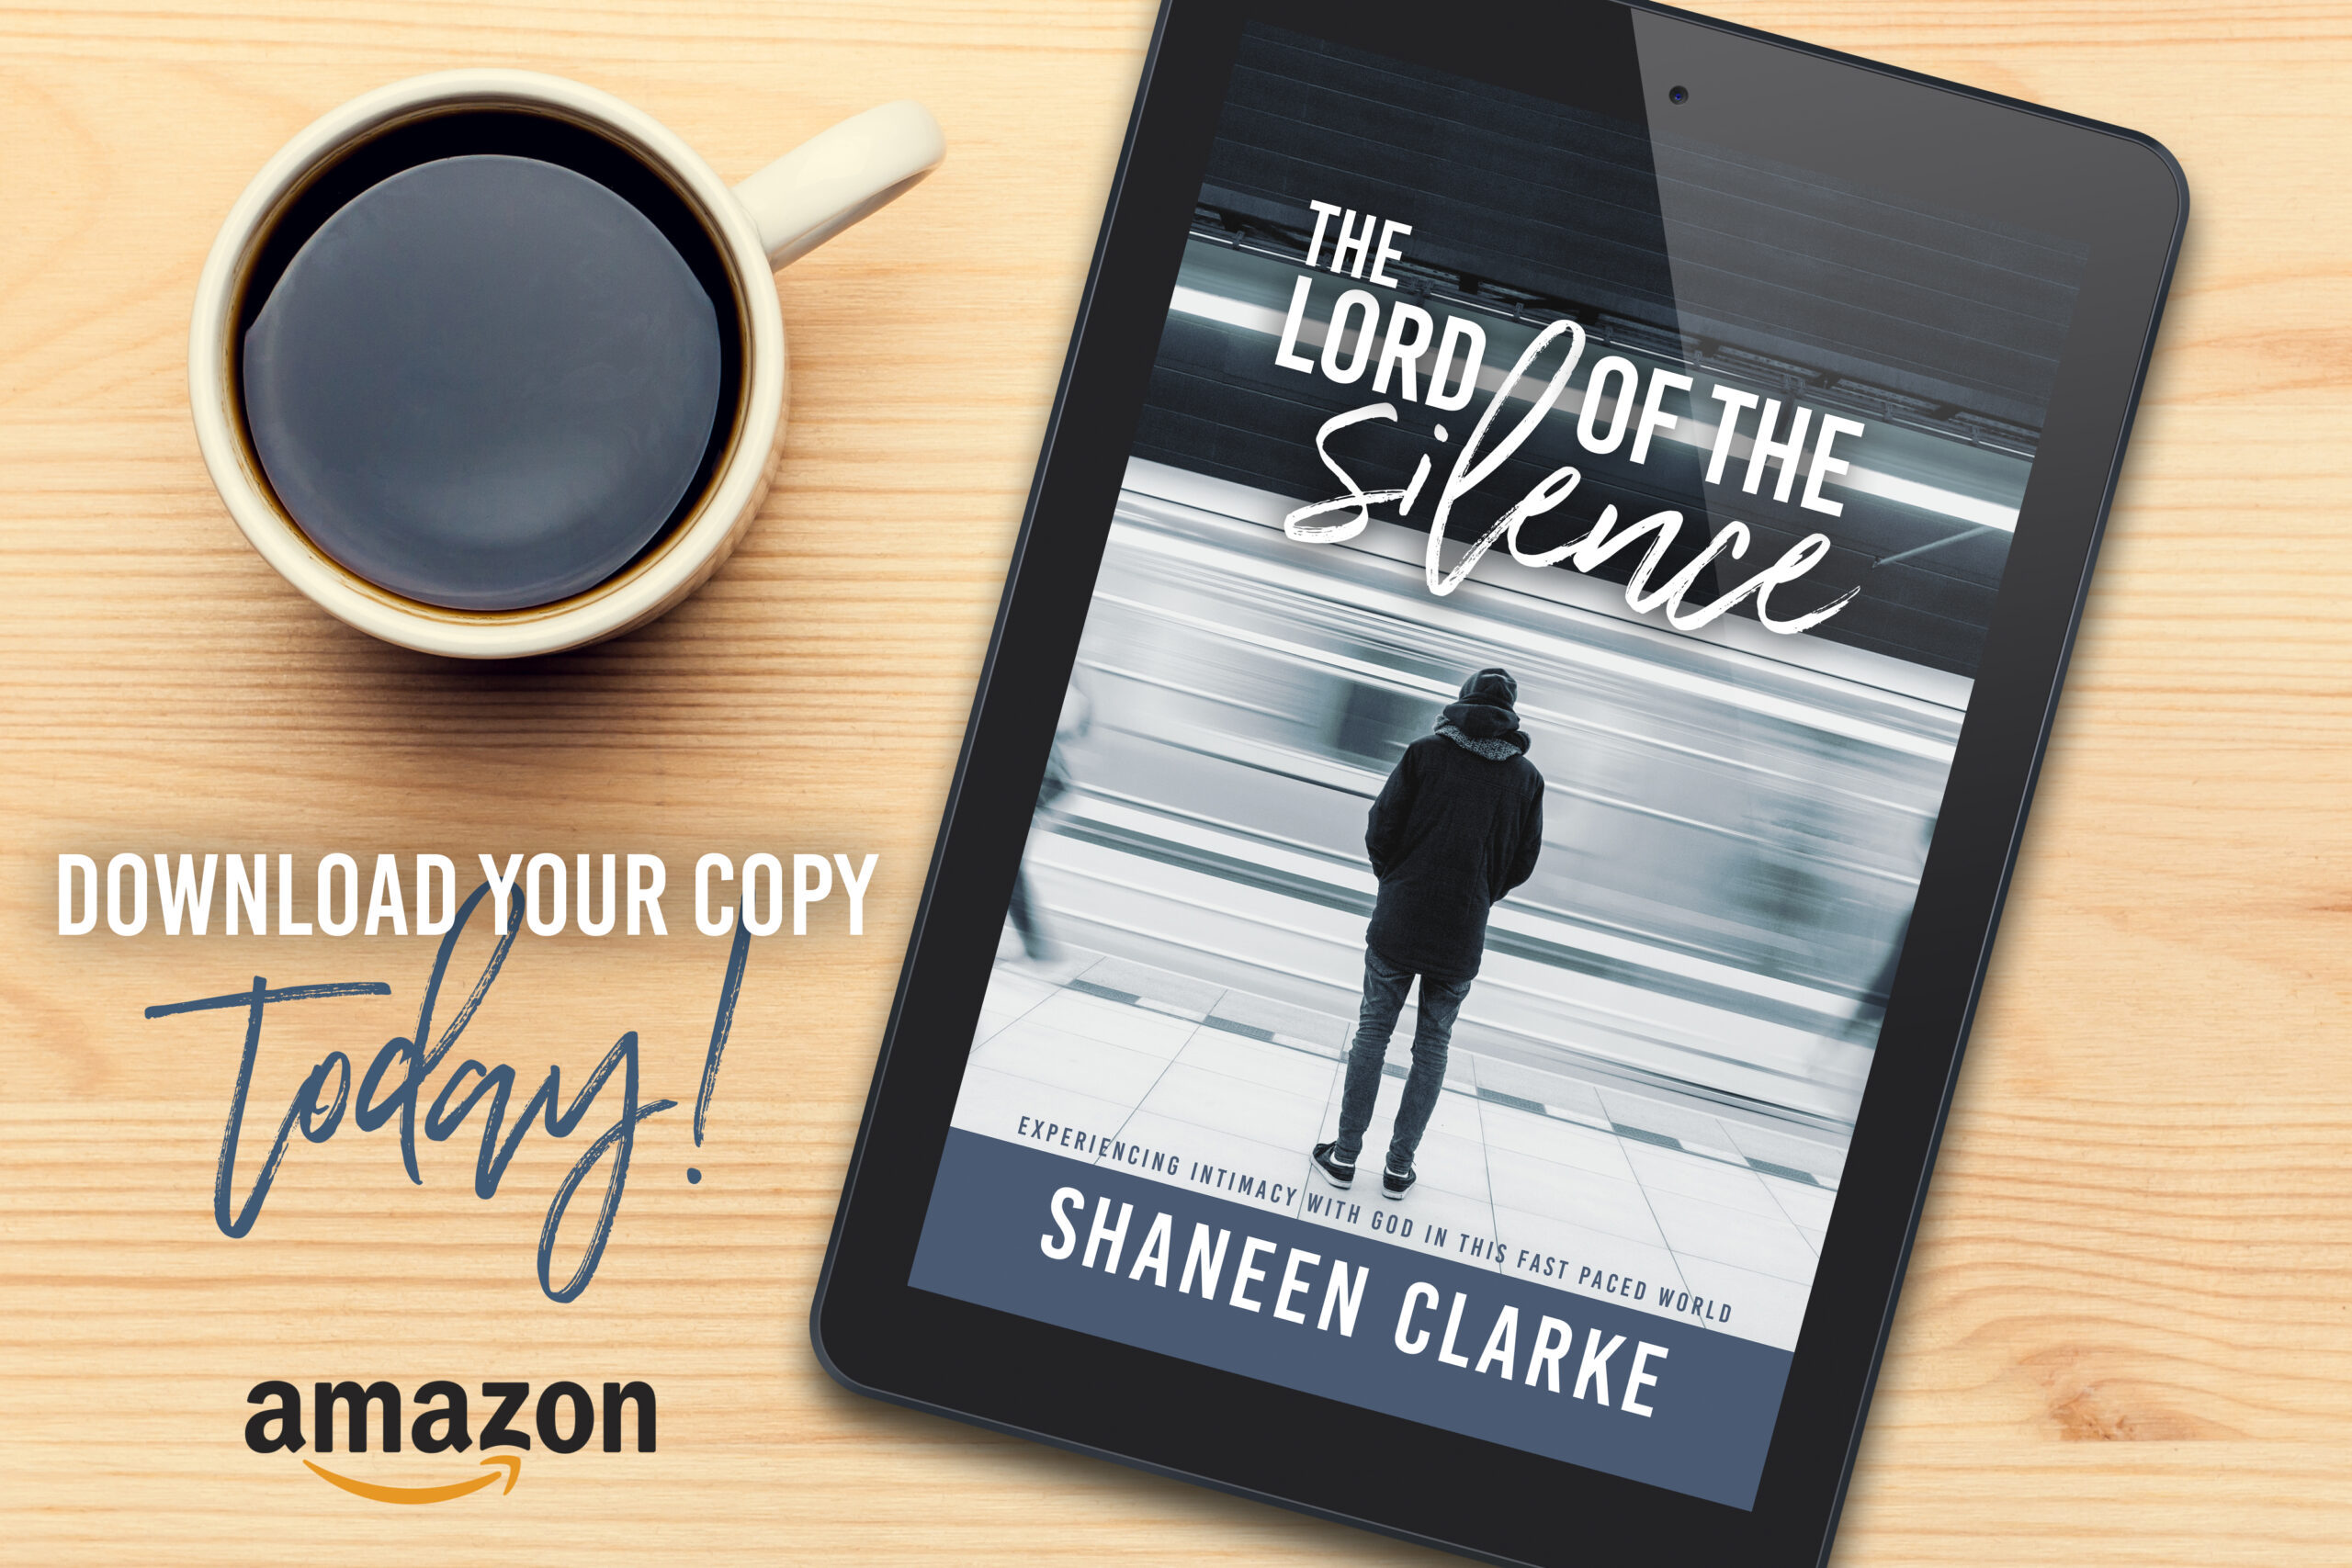 ebook The Lord of the Silence by Shaneen Clarke